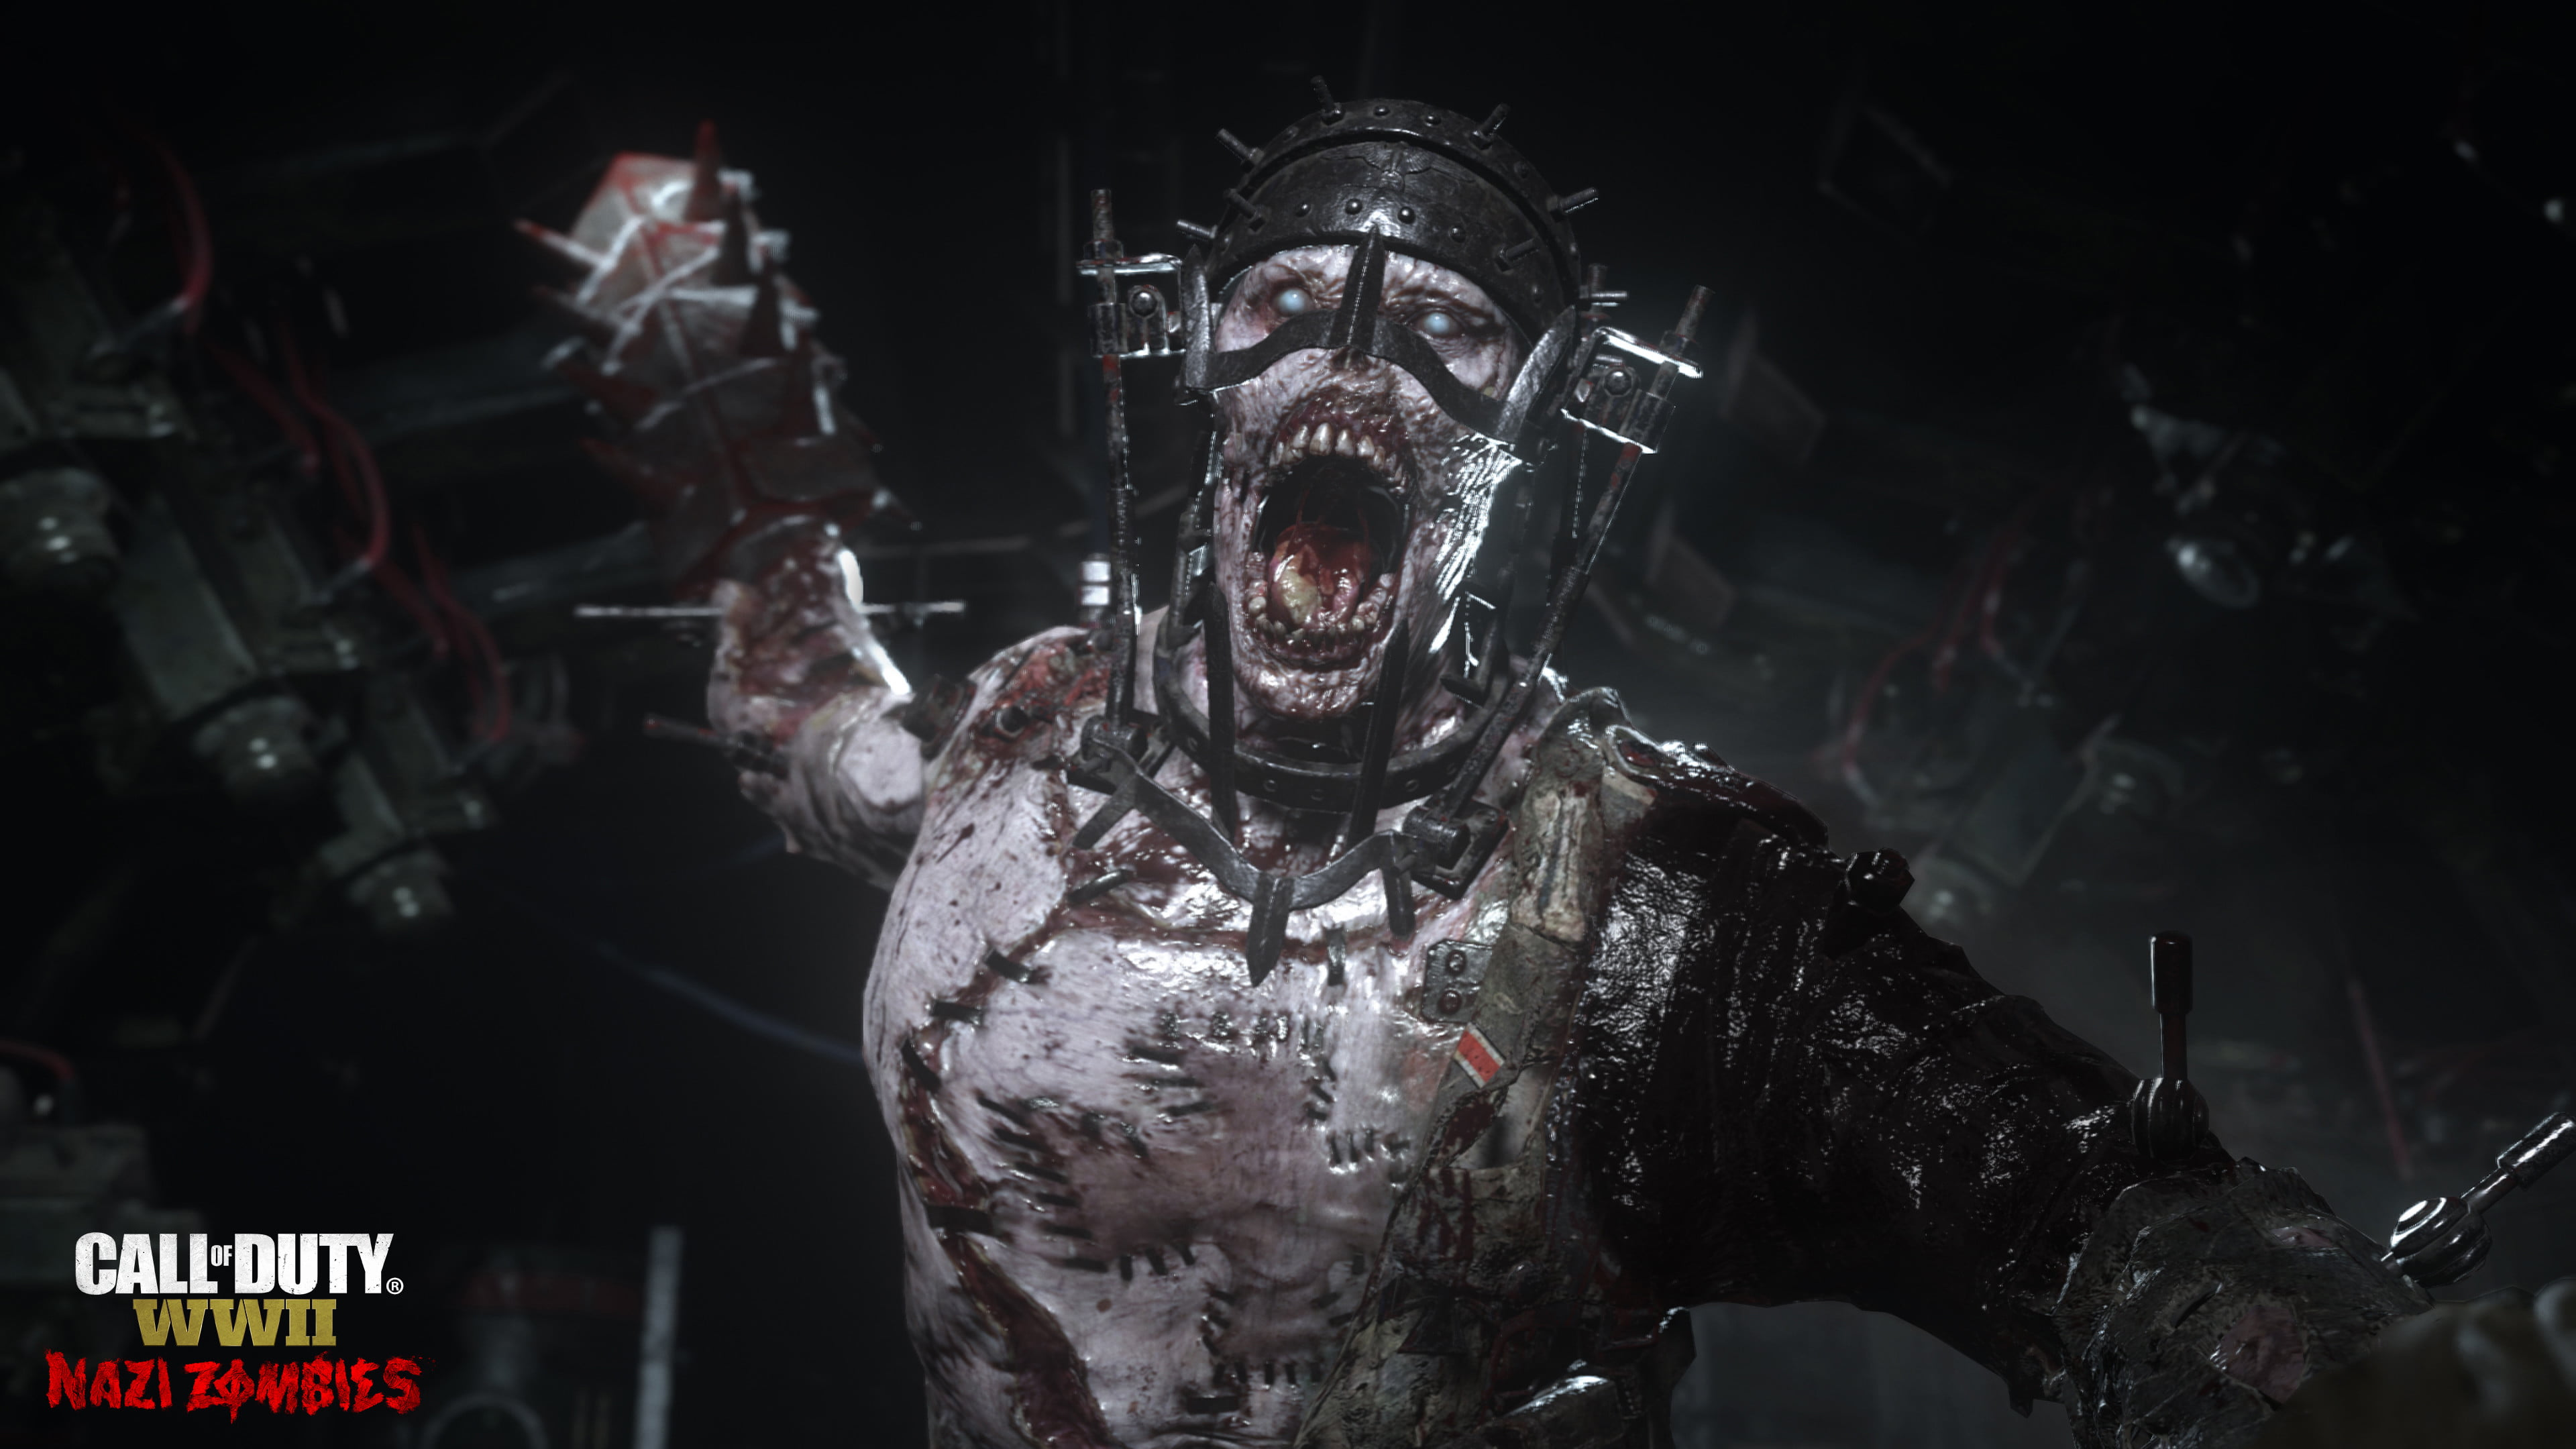 1280x1024 Call Of Duty Wwii Nazi Zombies 1280x1024 Resolution Hd